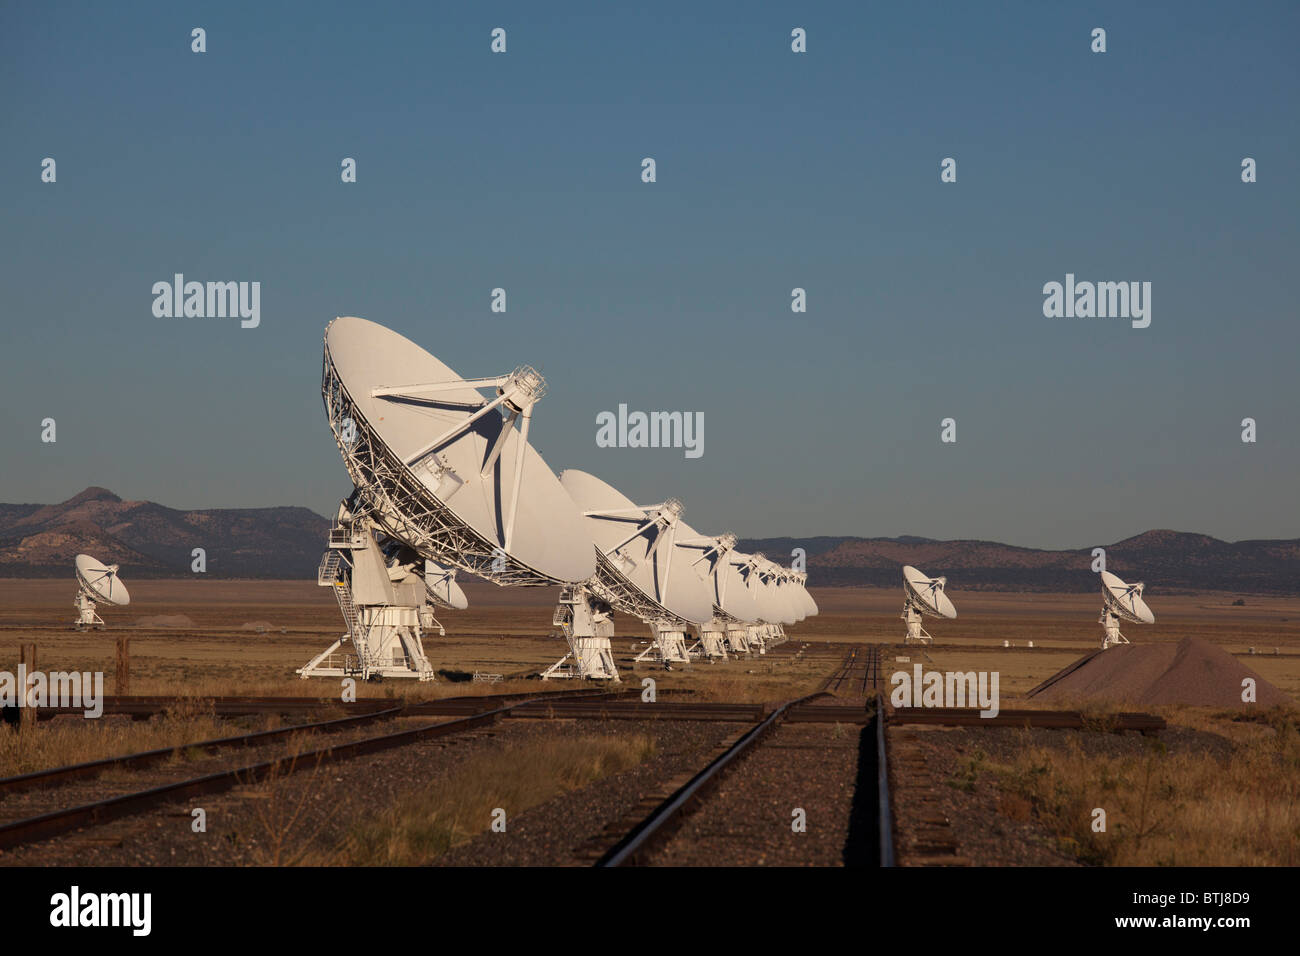 The Very Large Array radio telescope, part of the National Radio Astronomy Observatory - Stock Image